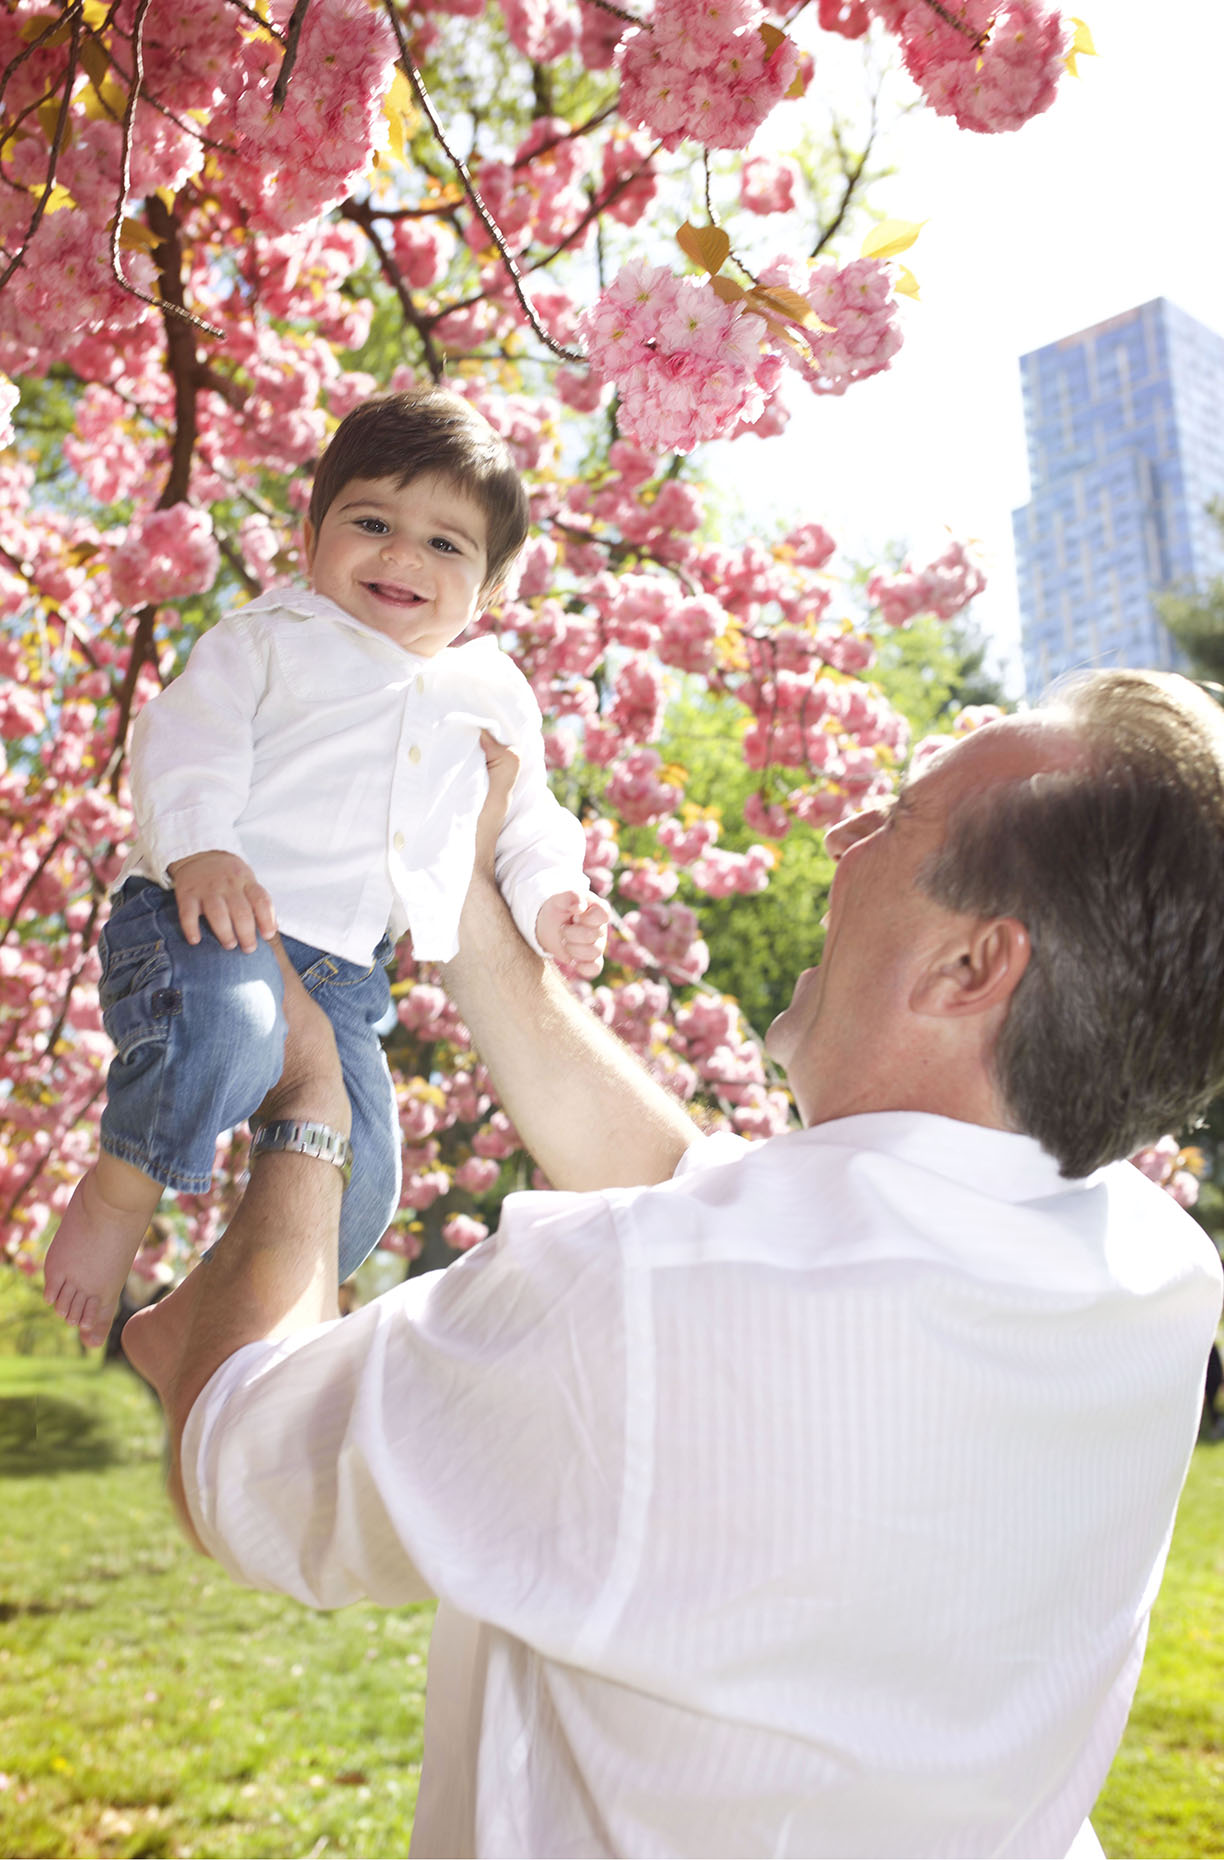 Cherry blossom family photo shoot father son.jpg